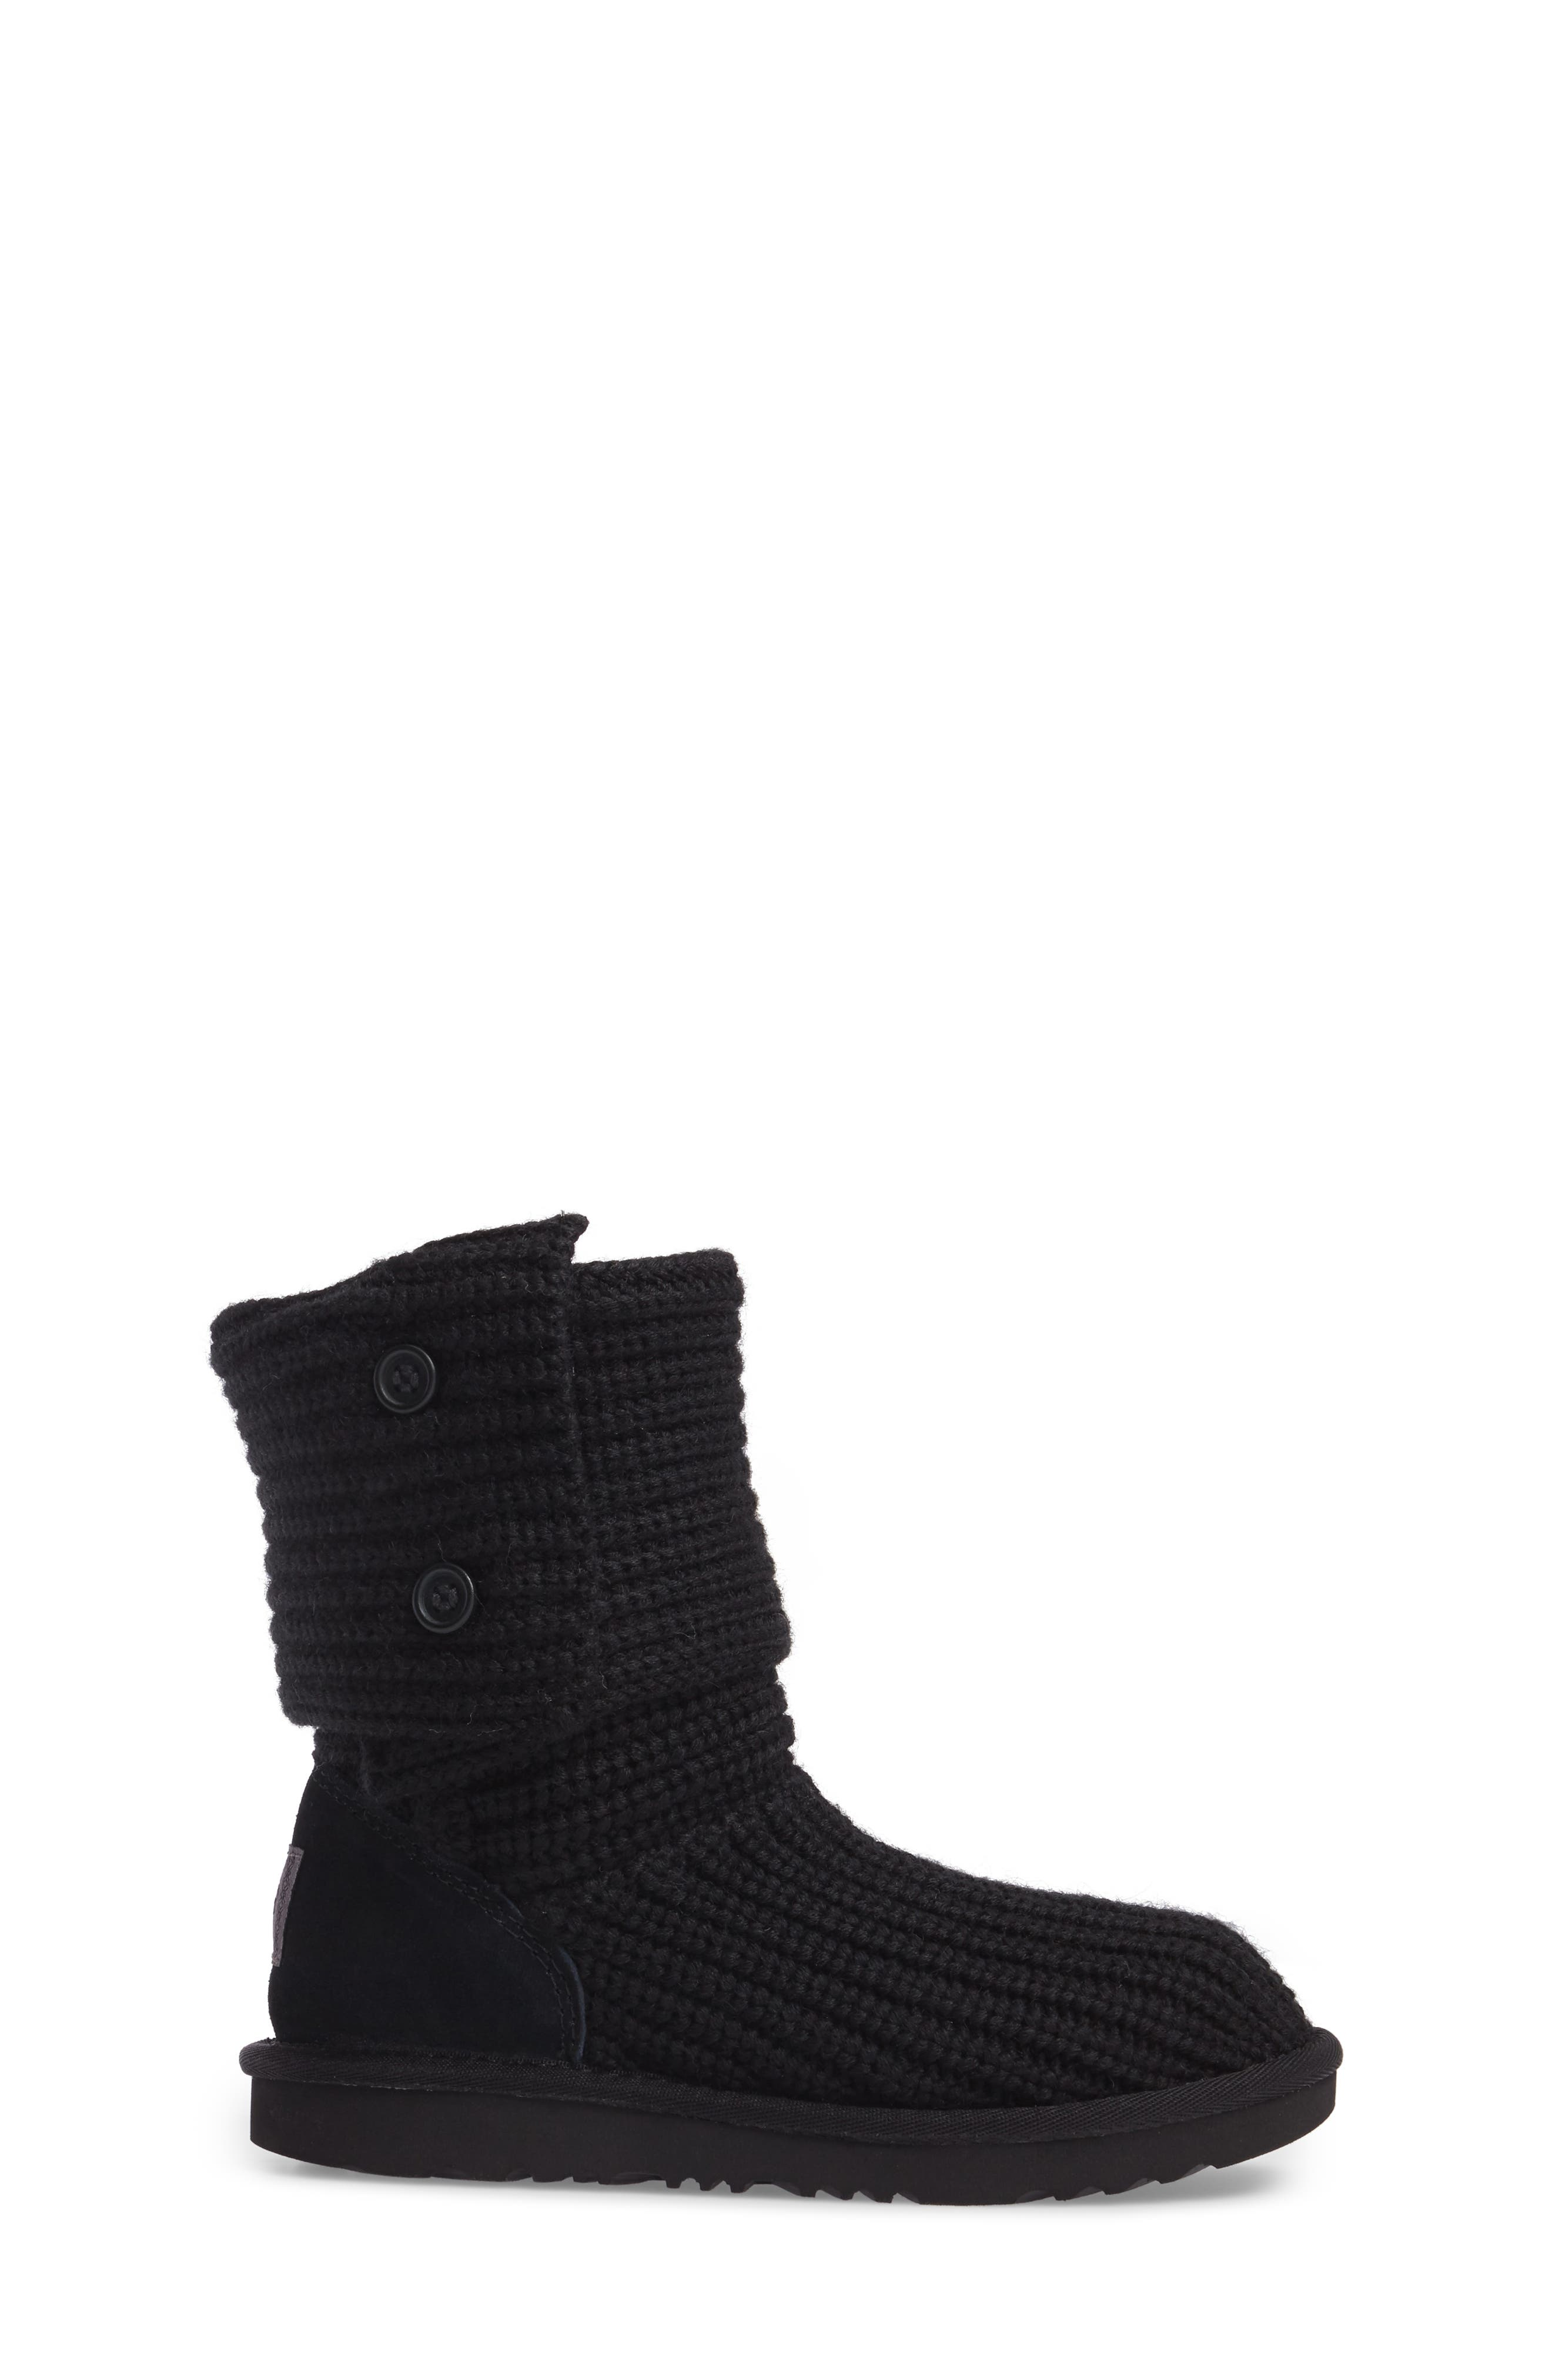 Cardy II Cableknit Boot,                             Alternate thumbnail 3, color,                             BLACK